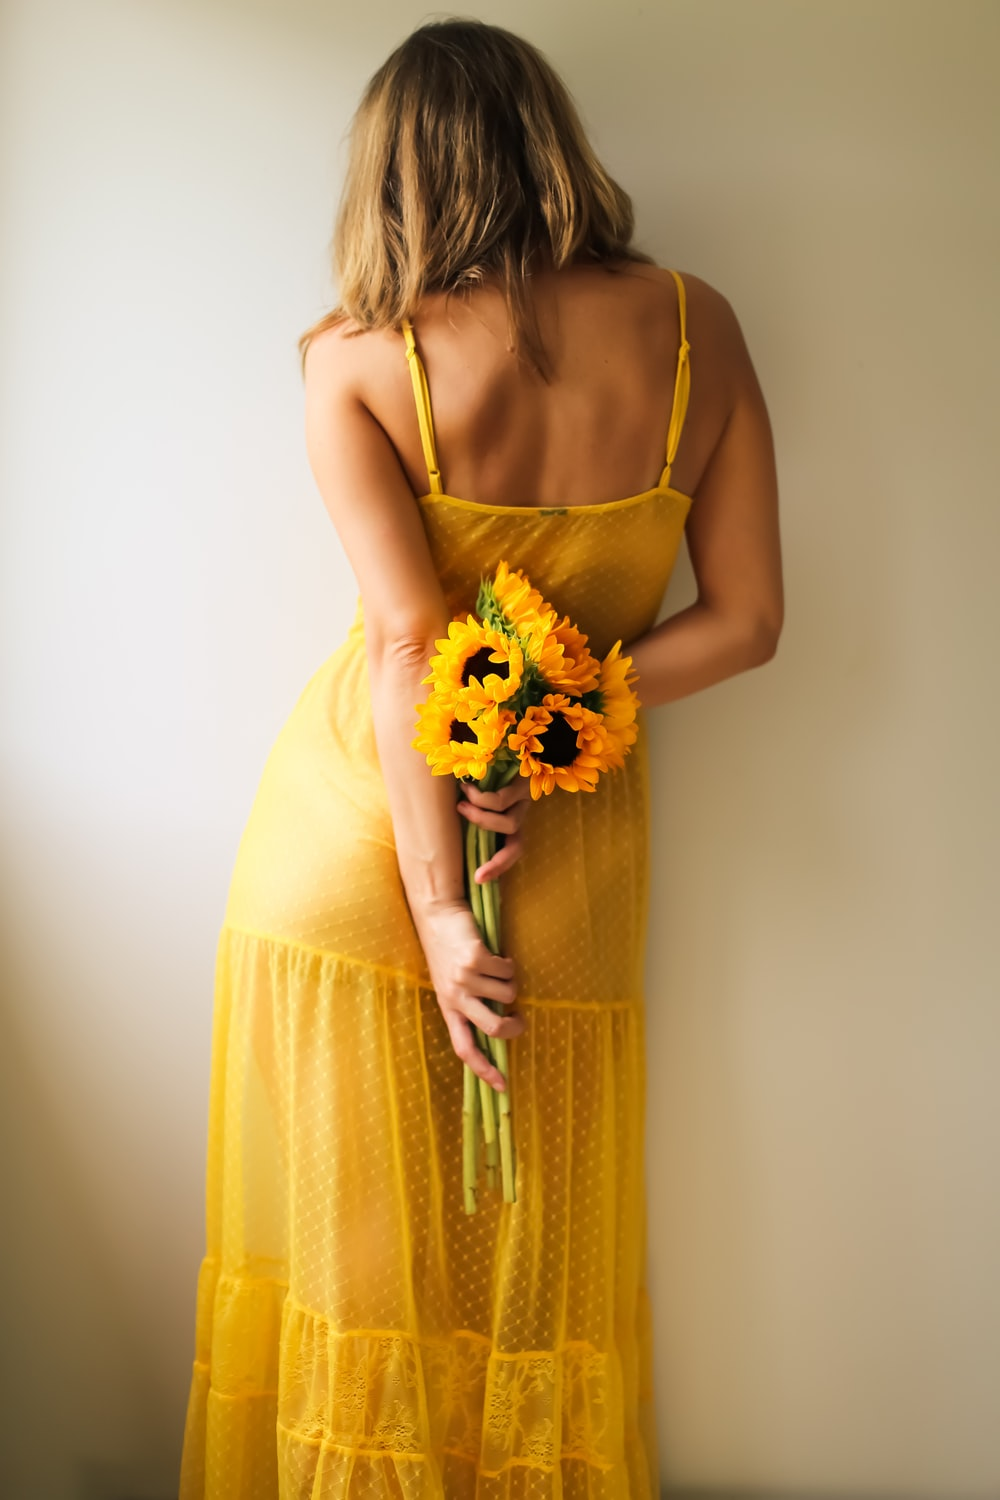 woman in yellow spaghetti strap dress holding yellow and white flower bouquet